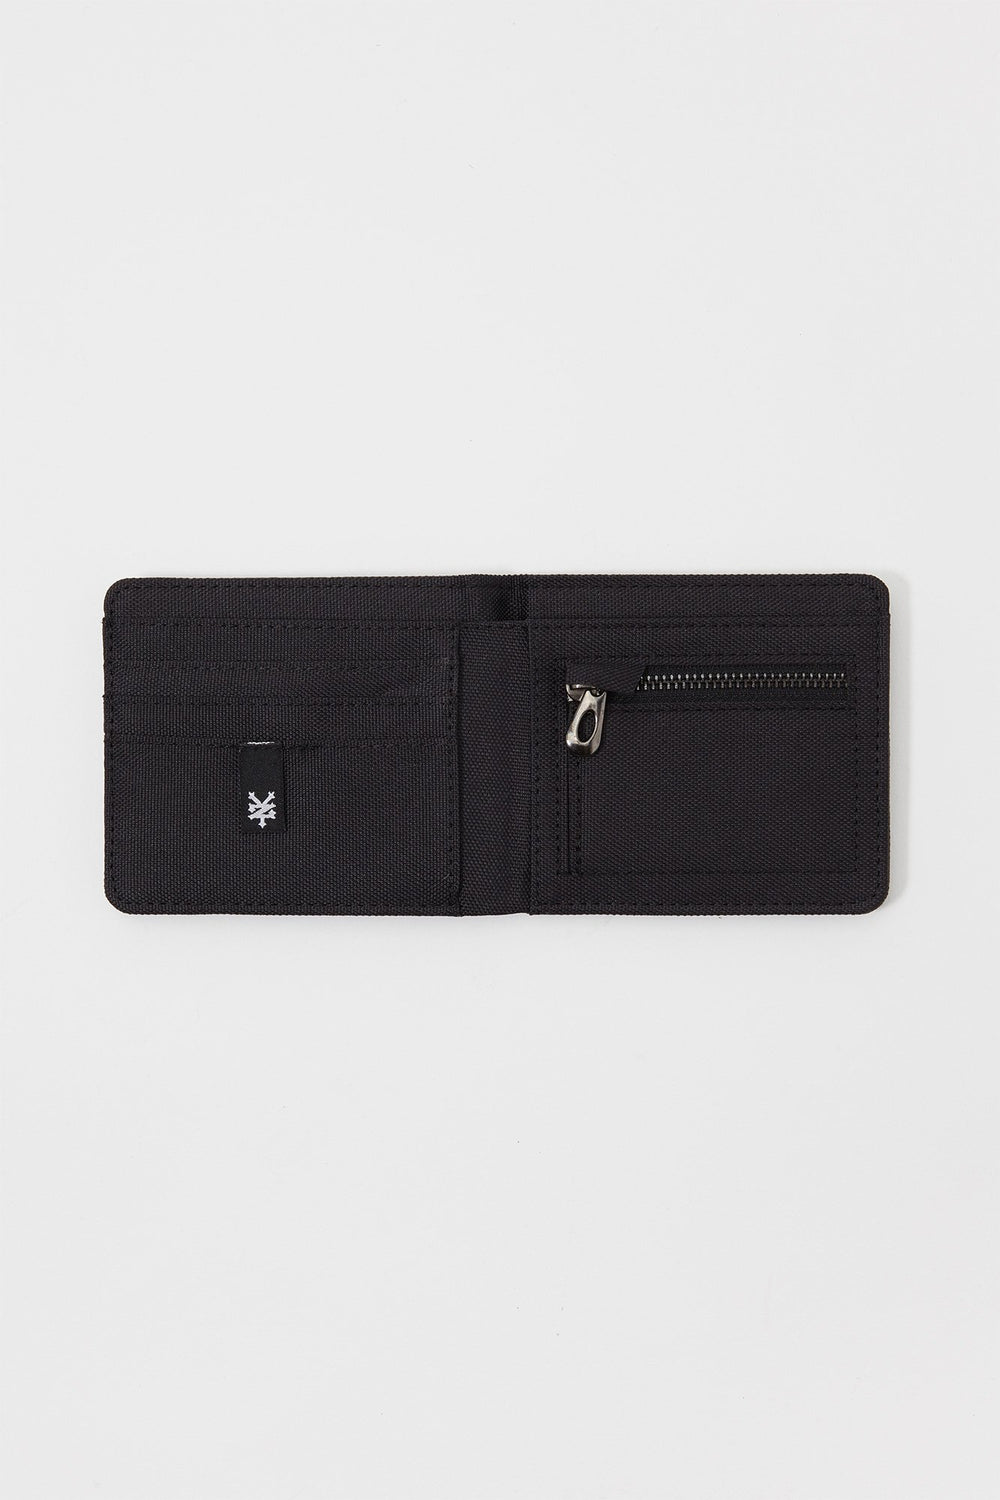 Zoo York Single Fold Canvas Wallet Grey